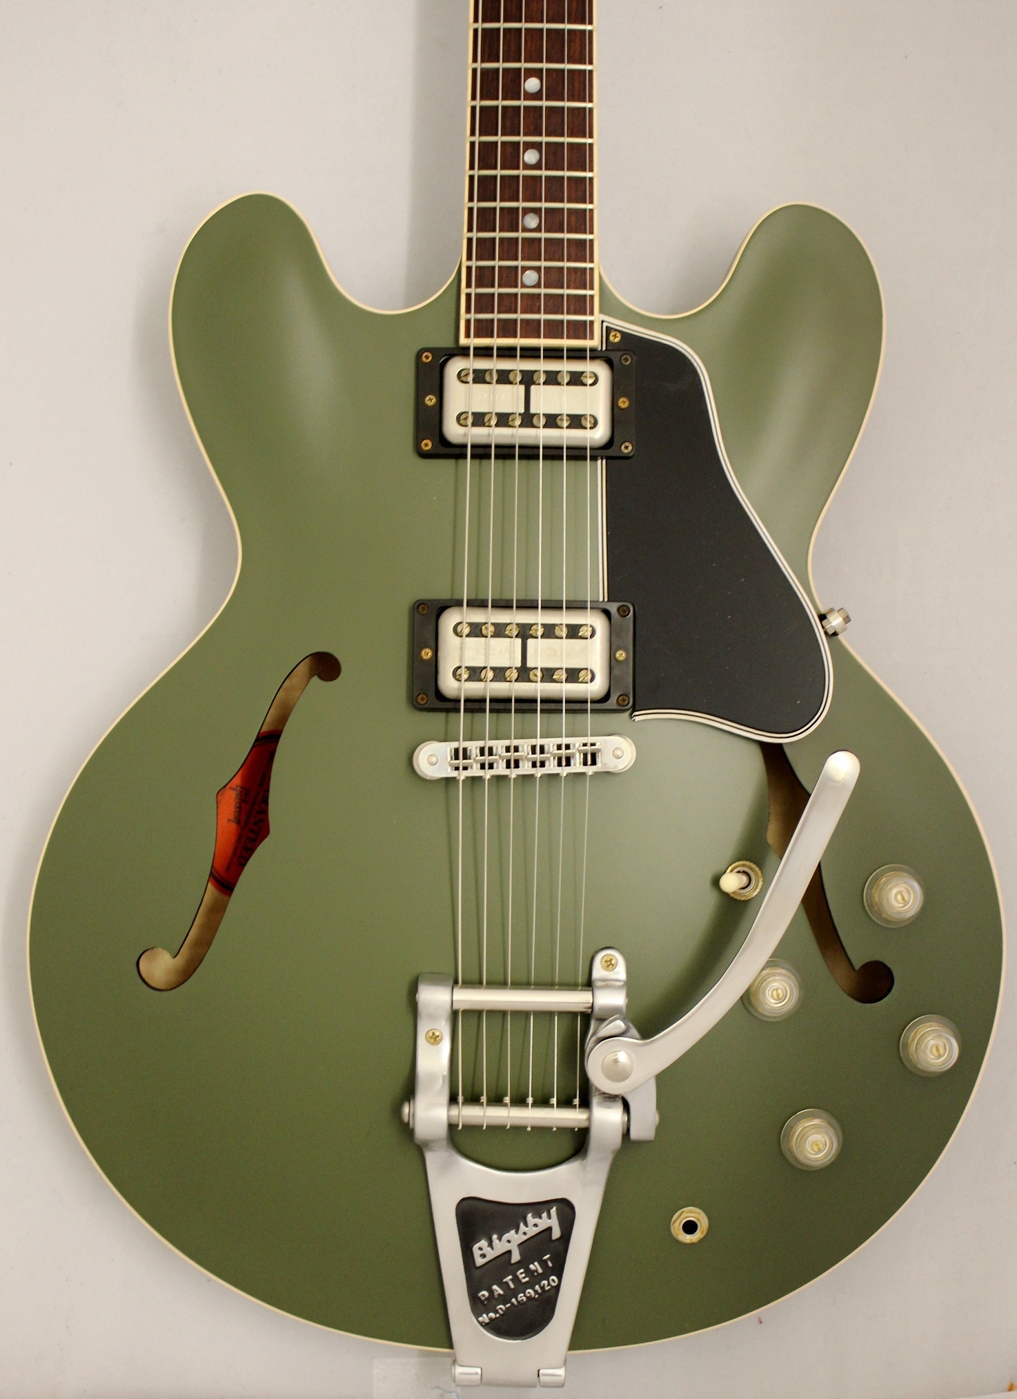 gibson custom shop limited chris cornell es 335 drab green bigsby. Black Bedroom Furniture Sets. Home Design Ideas